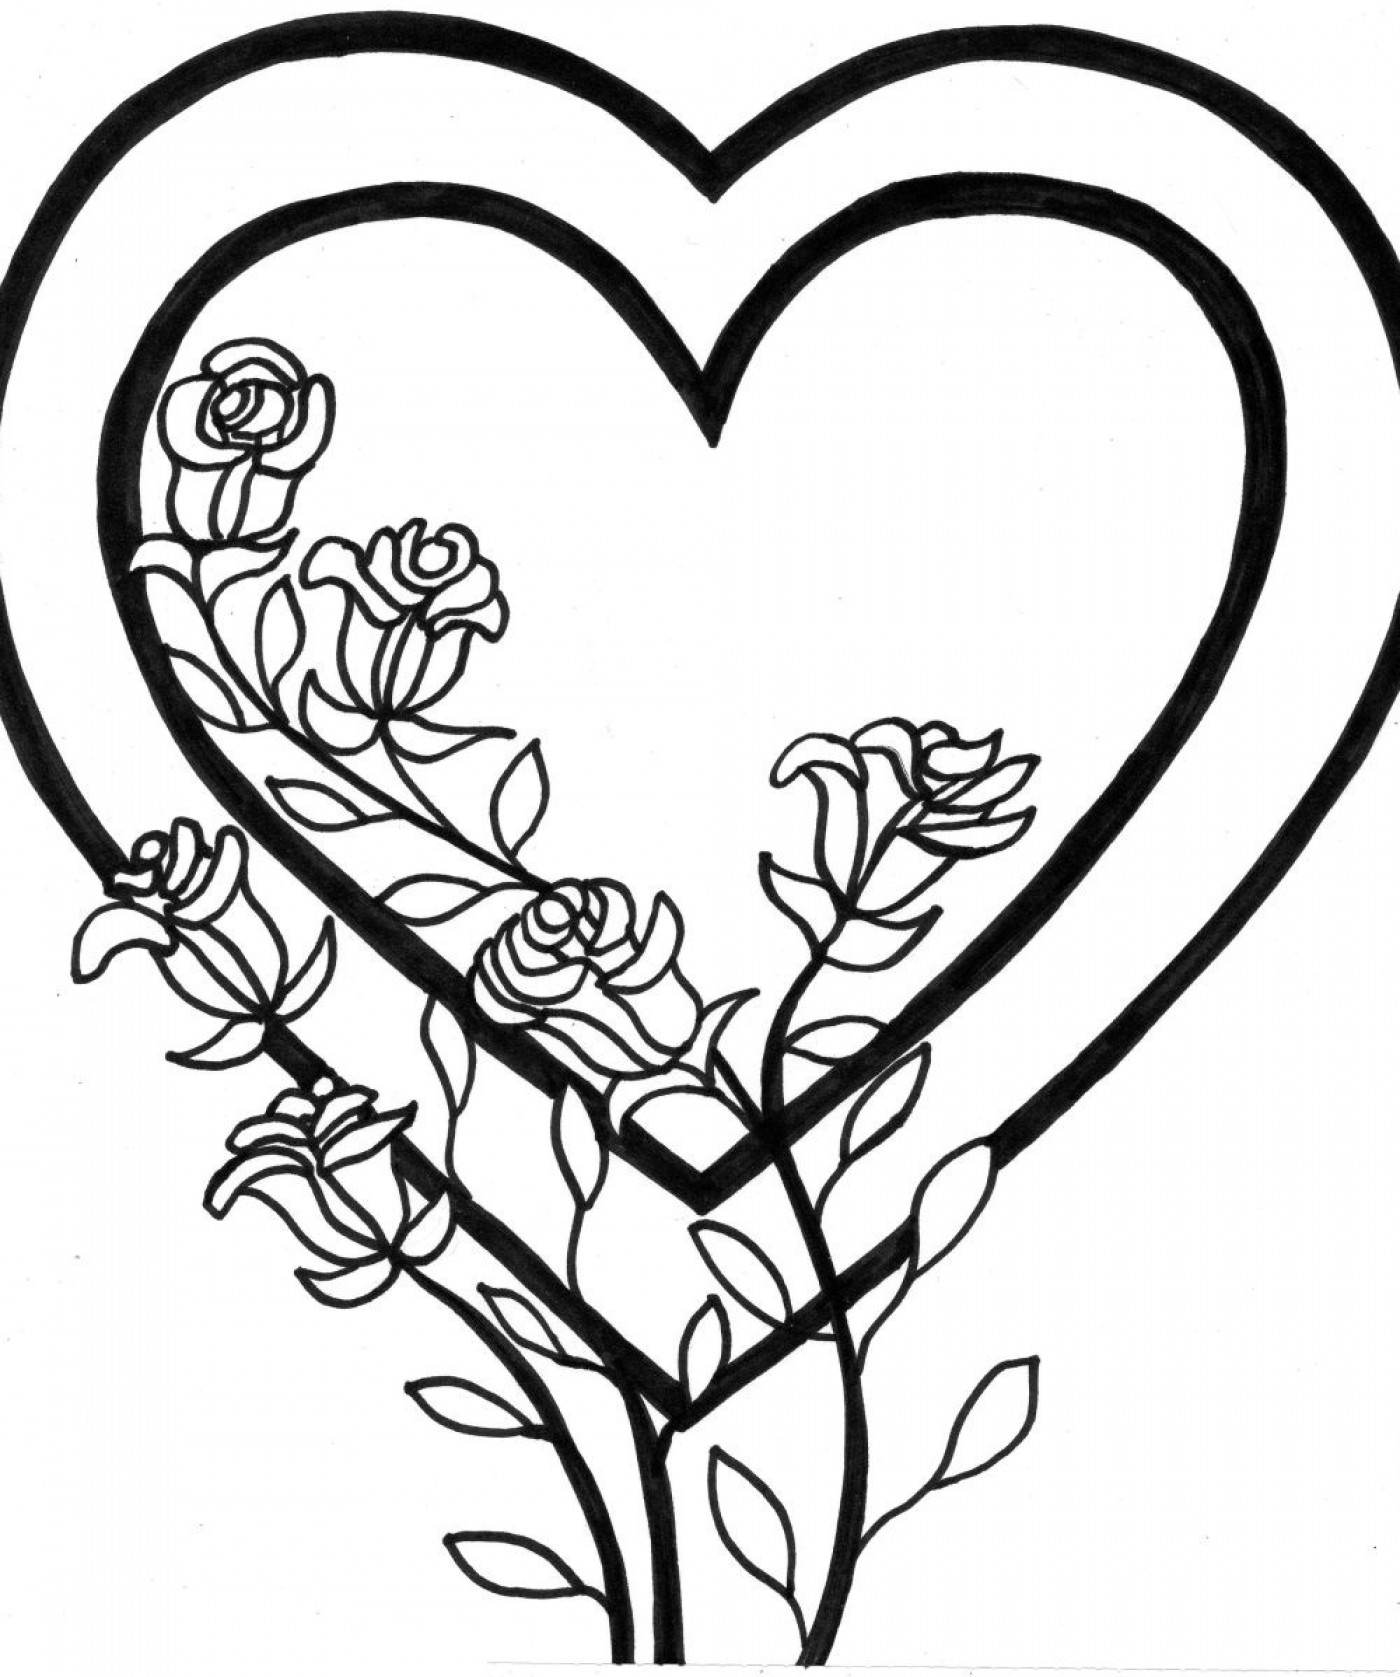 hearts printable coloring pages free printable heart coloring pages for kids printable hearts coloring pages